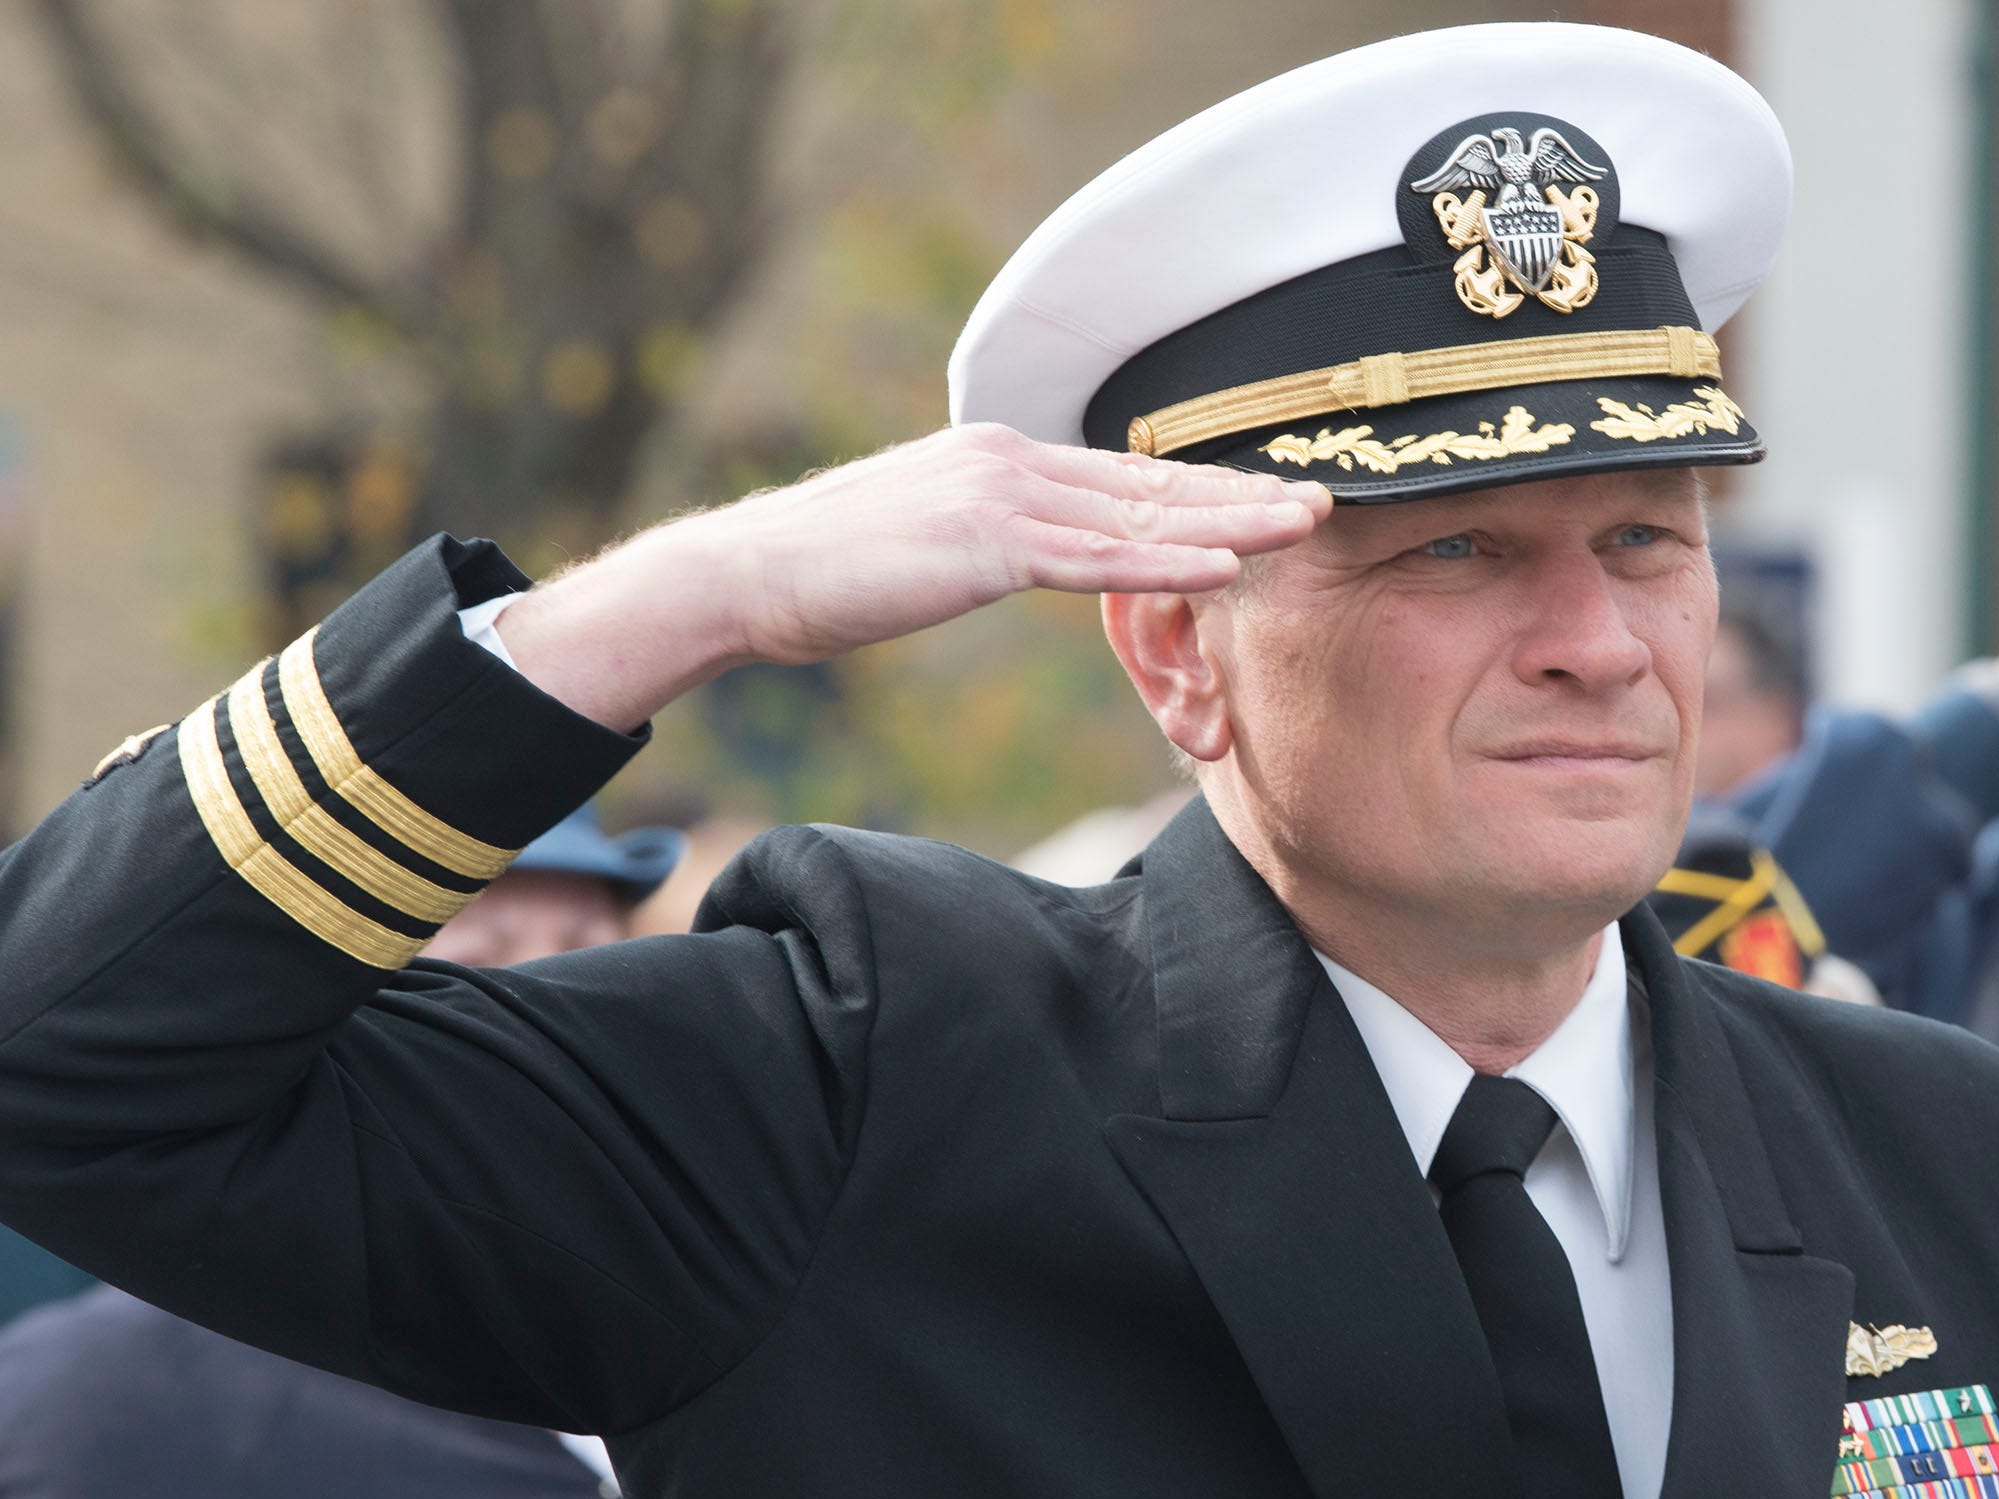 Commander Bruce Apgar  (Senior Naval Science Instructor at CASHS) salutes before his role as guest speaker during the ceremony. The Veterans Day Parade and ceremony to honor members of the military was held Monday, November 12, 2018 along Lincoln Way East and at Memorial Square.